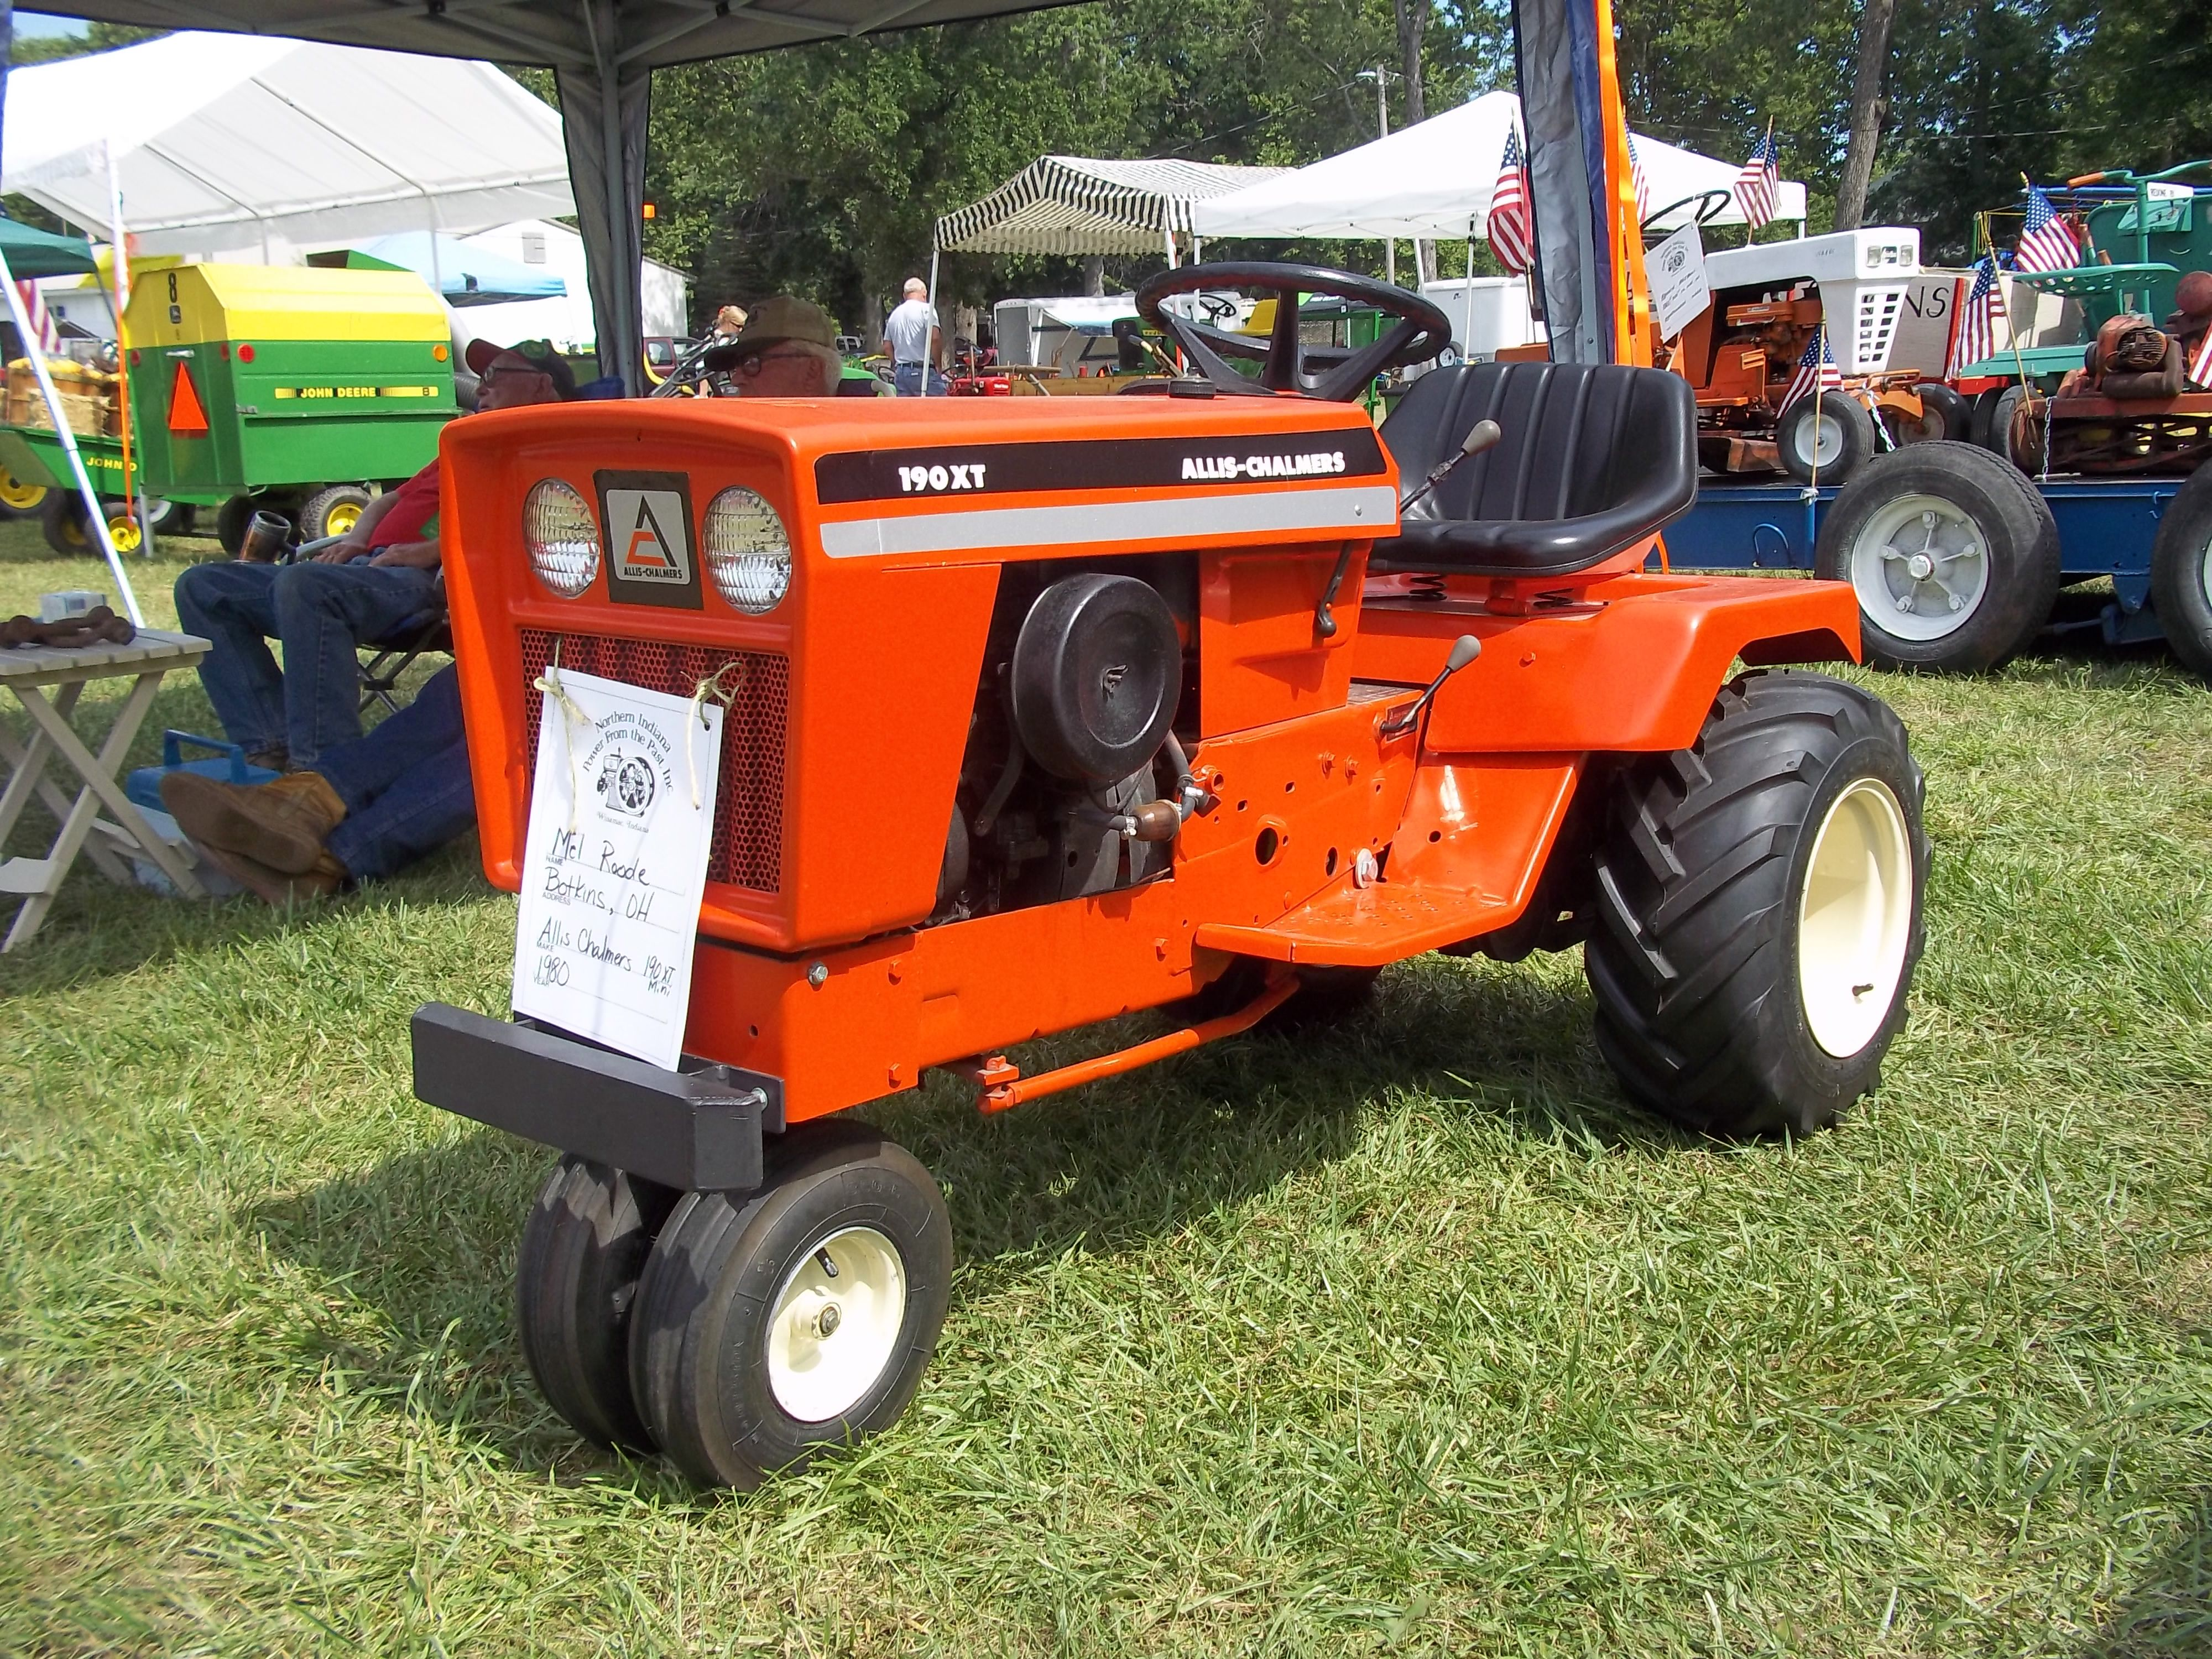 allis chalmers 190 xt mini tricycle lawn tractor ac my pictures